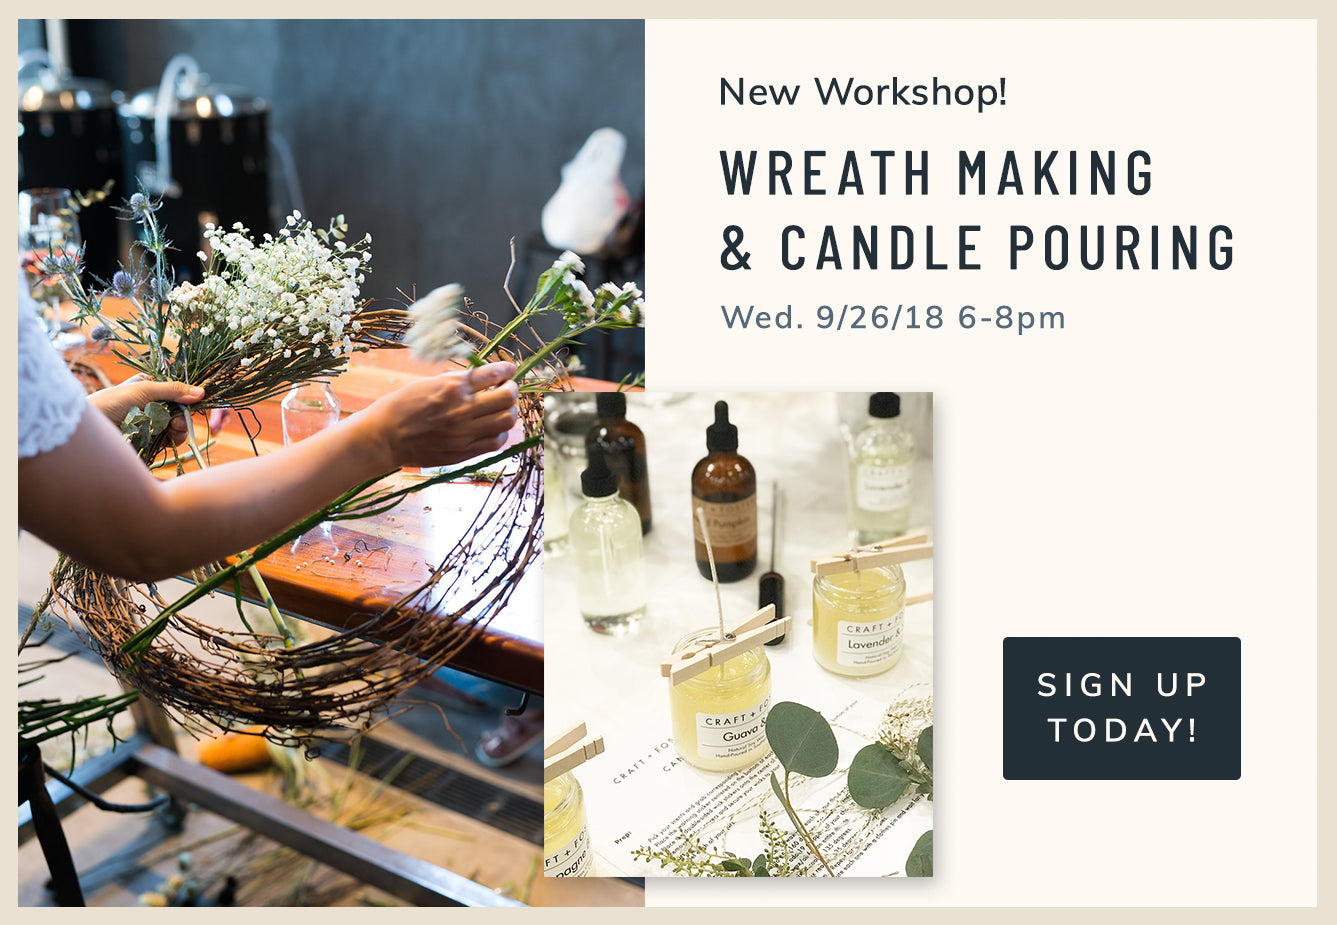 Dried Wreath Making + Candle Making - A Collaboration with Craft + Foster